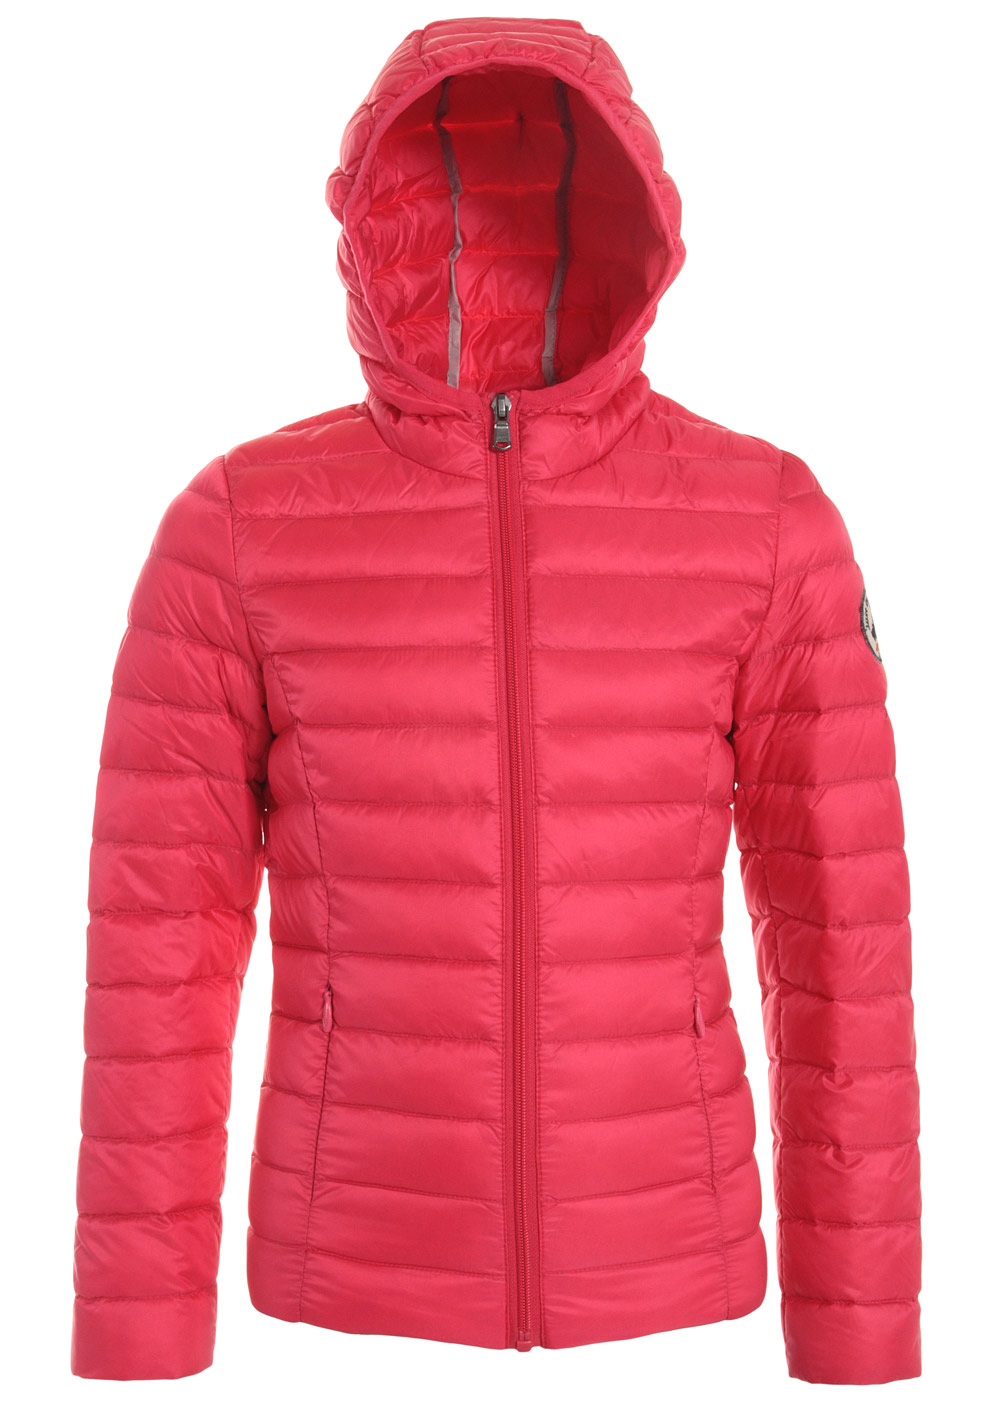 JOTT Light downjacket Carla - pink